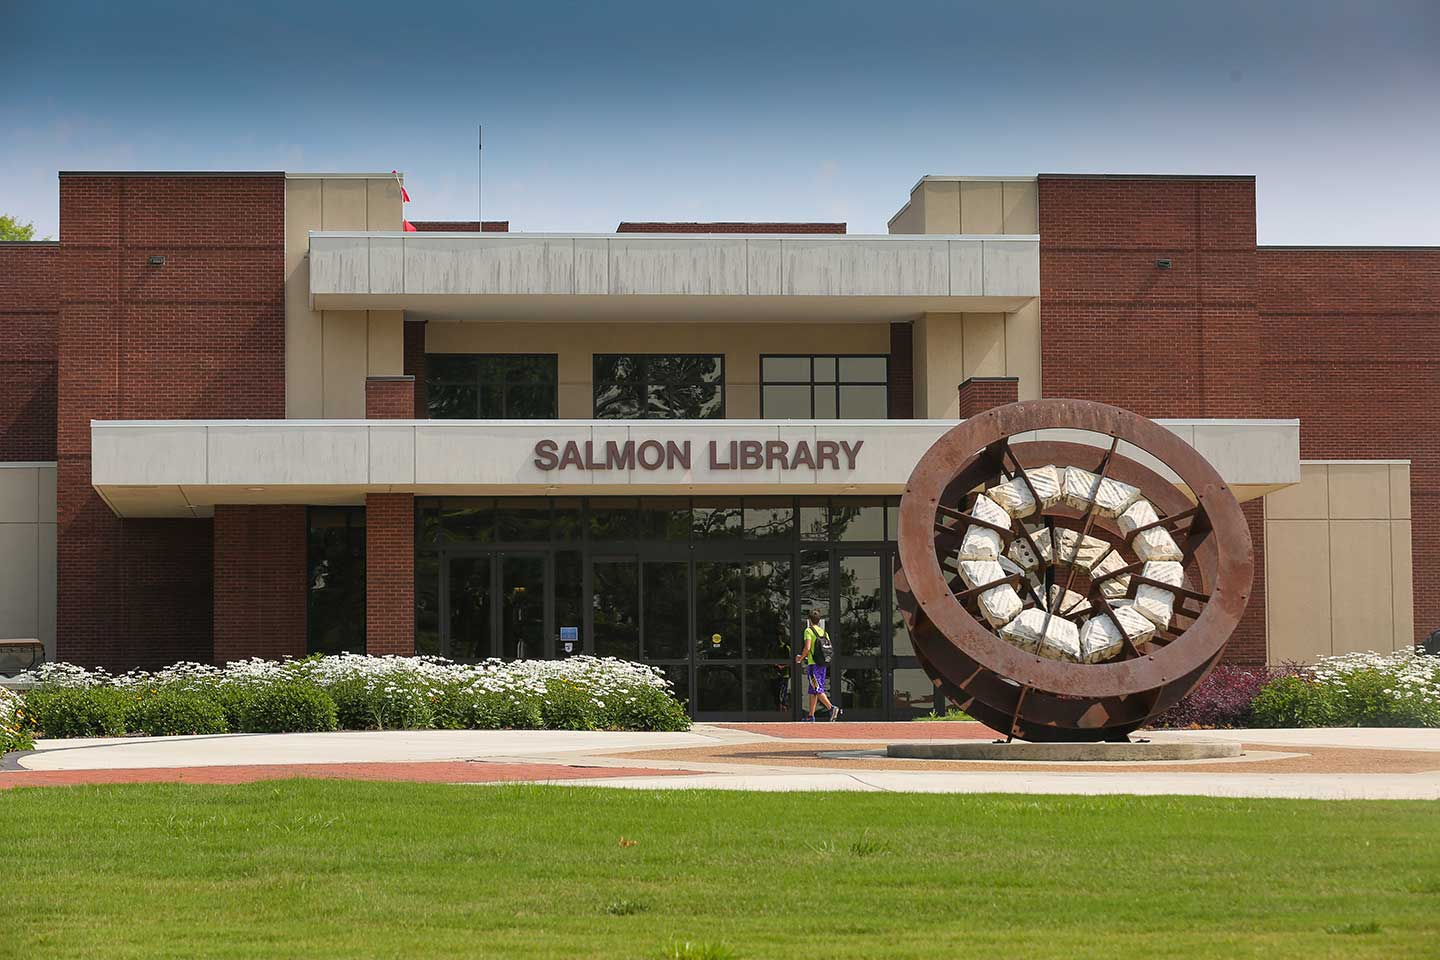 Entrance to the Salmon Library.